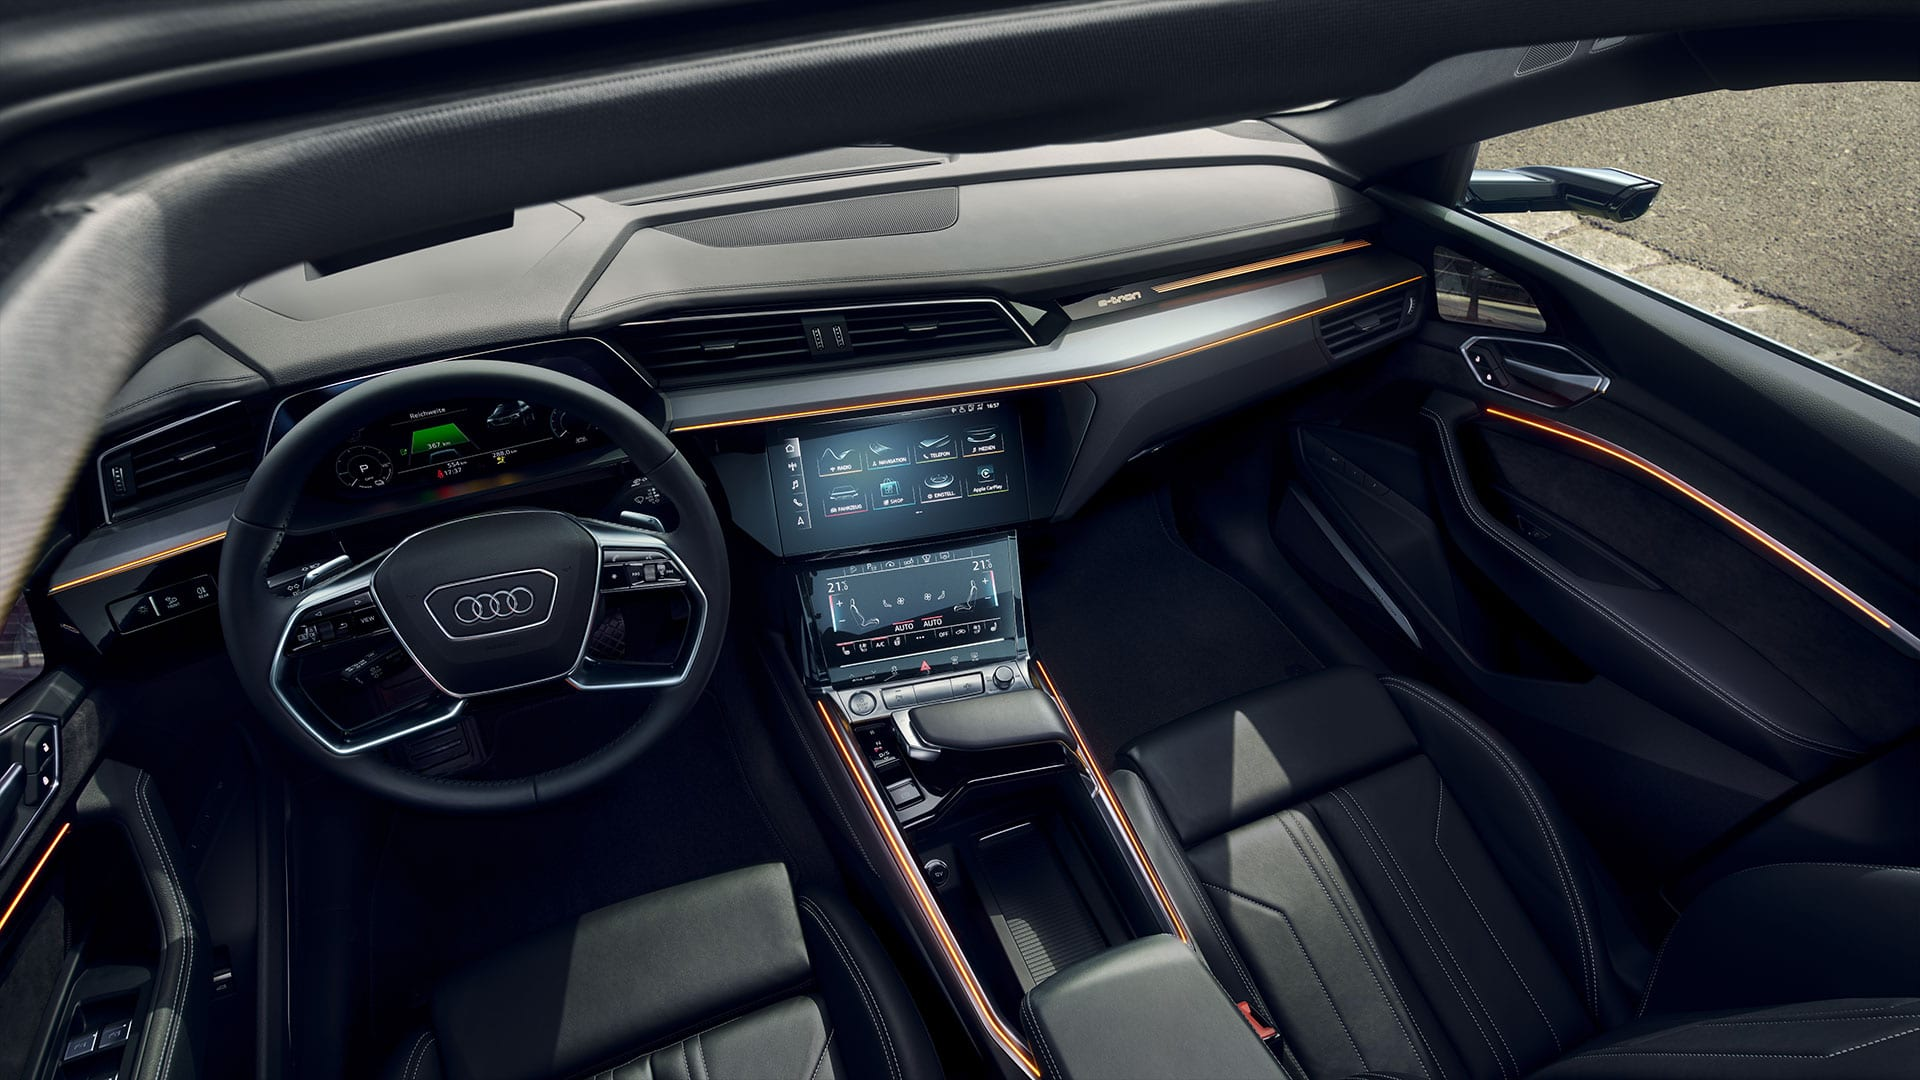 MMI Navigation plus in Audi e-tron